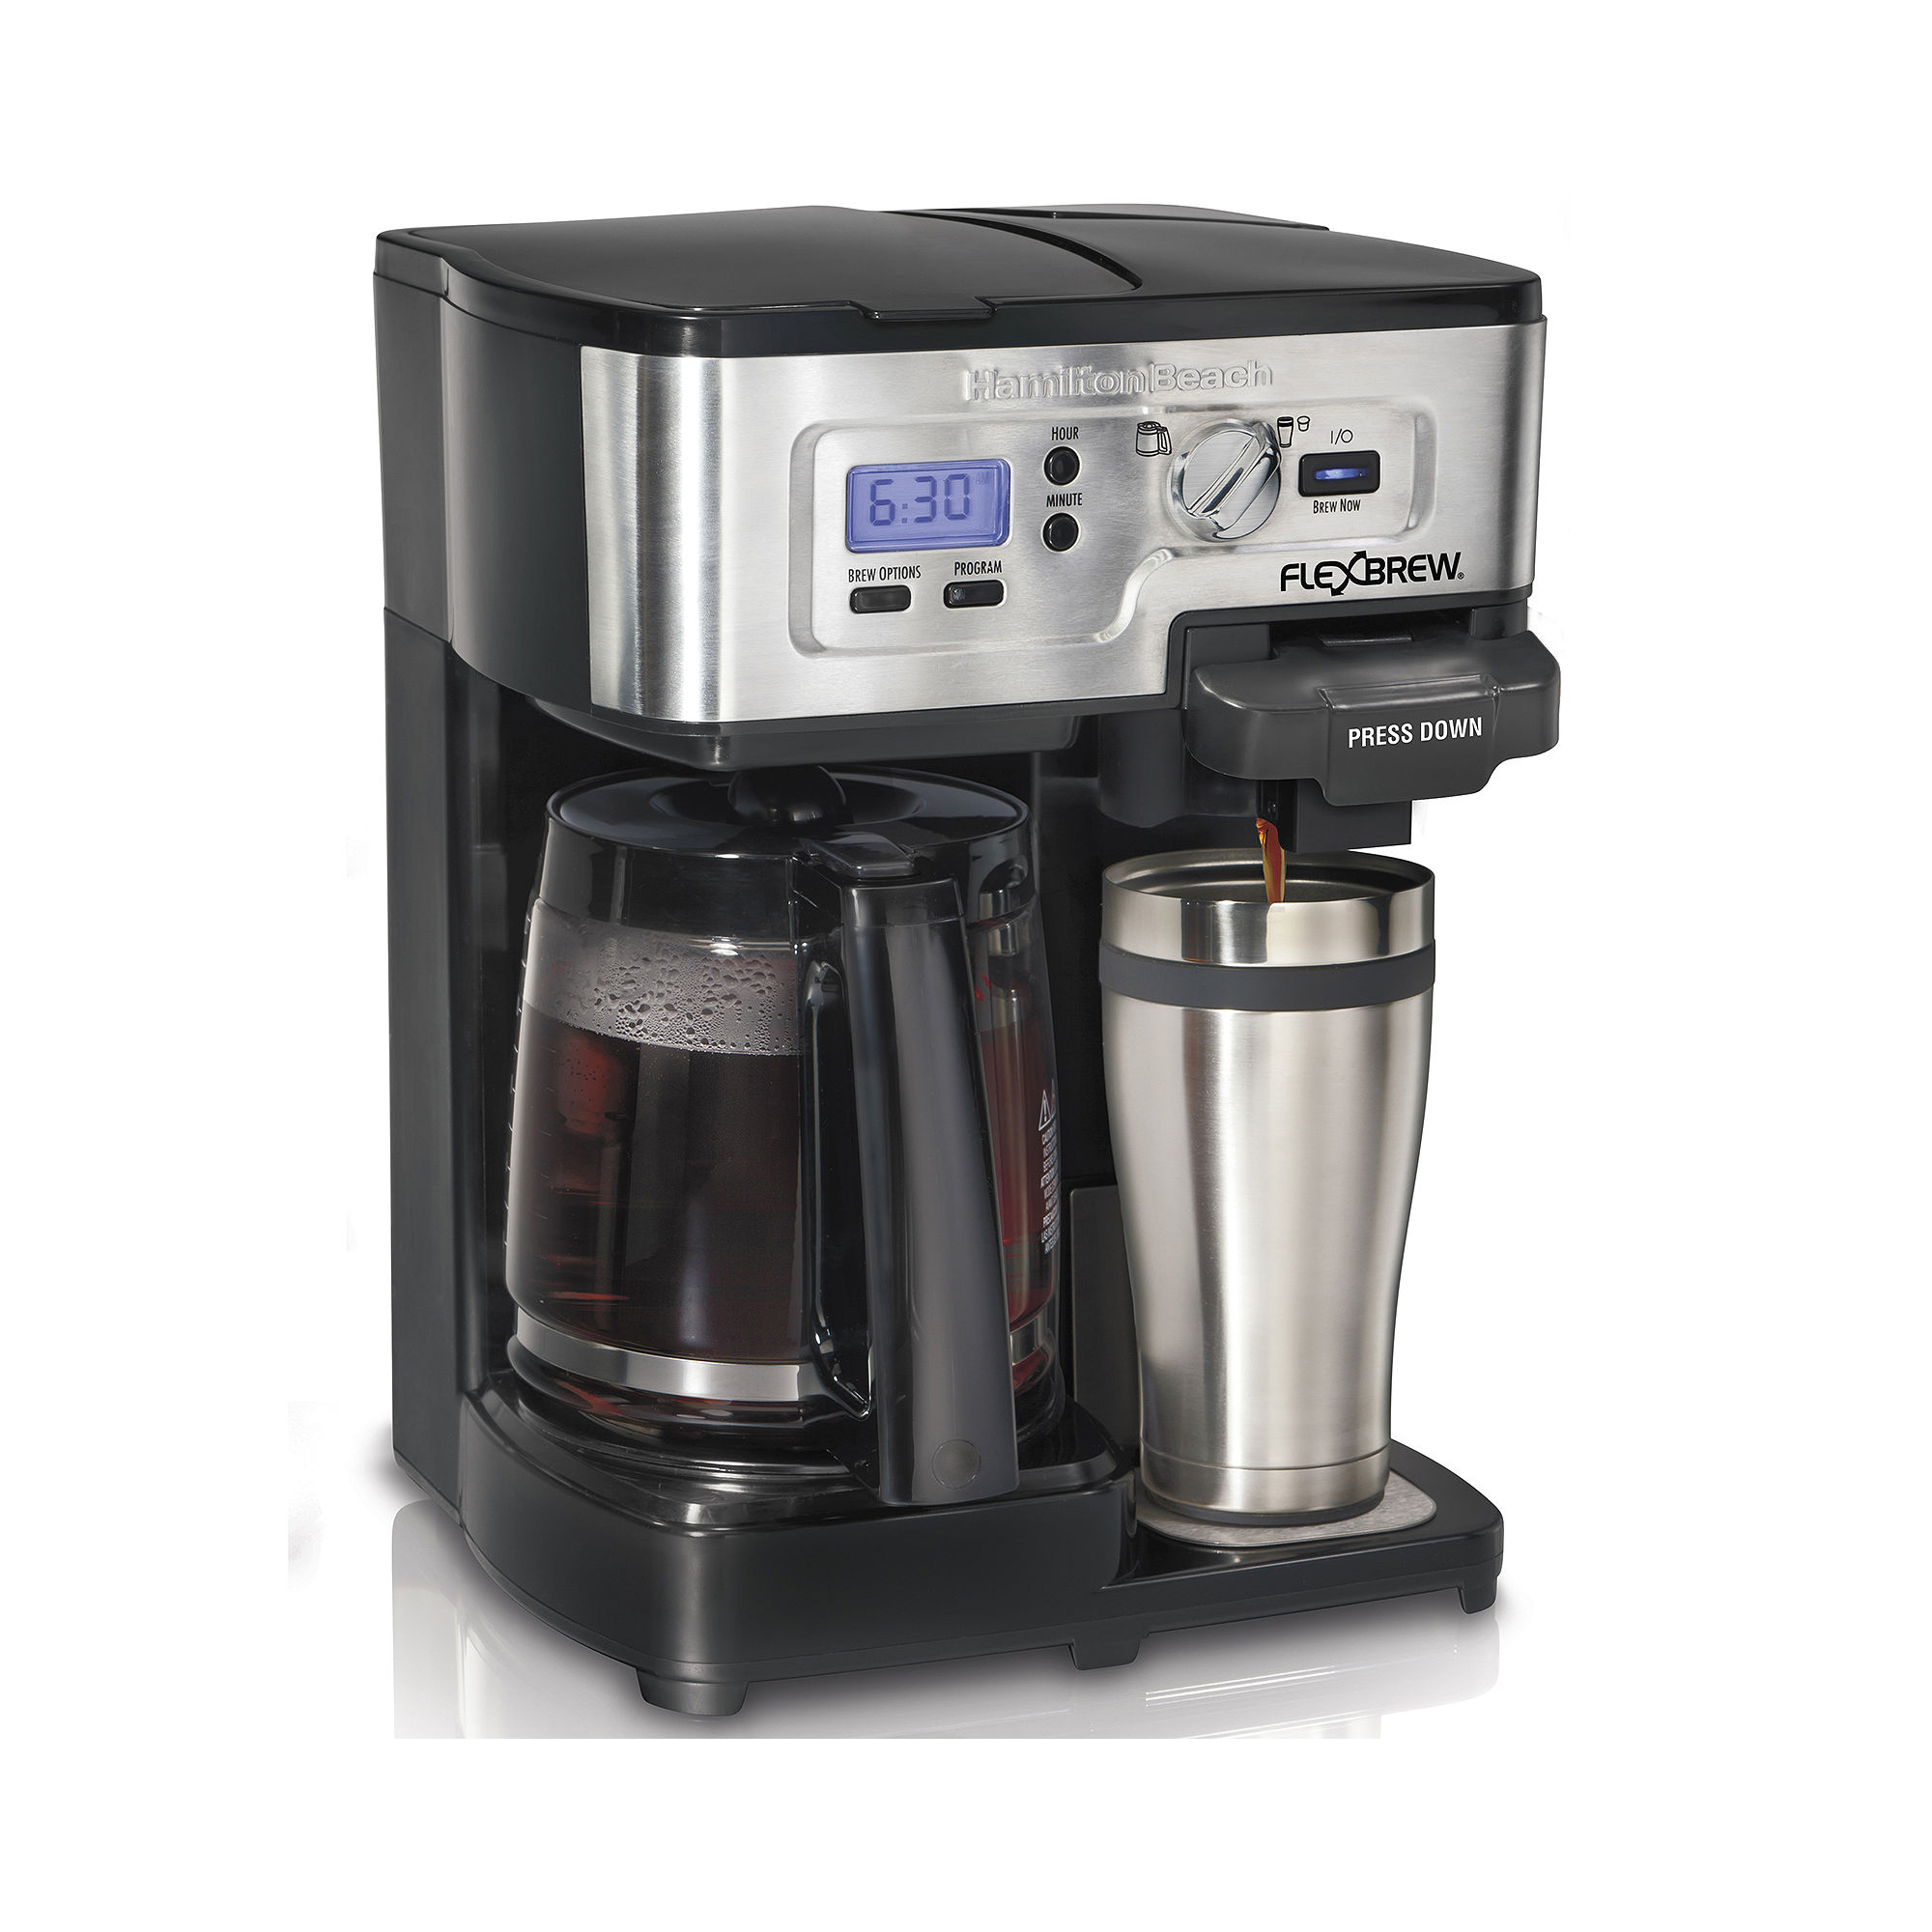 Coffee Maker Jcpenney : JCPenney Coupons for Hamilton Beach 2-Way FlexBrew Programmable Coffee Maker